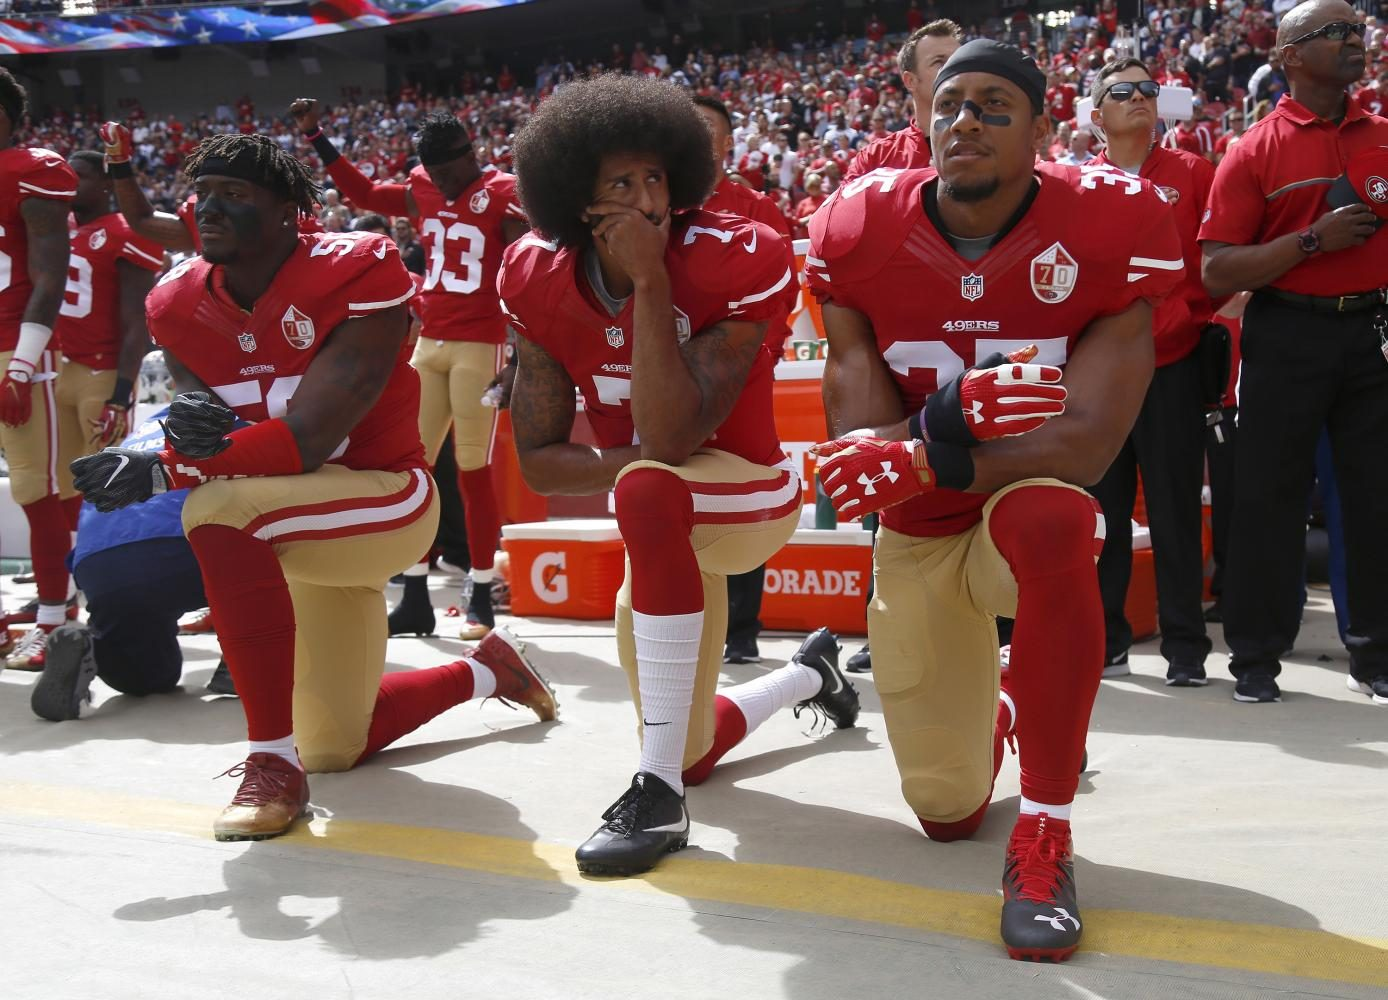 From left, San Francisco 49ers' Eli Harold (58), quarterback Colin Kaepernick (7) and Eric Reid (35) kneel during the national anthem before their NFL game against the Dallas Cowboys on Sunday, Oct. 2, 2016 in Santa Clara, Calif. (Nhat V. Meyer/Bay Area News Group/Tribune News Service)